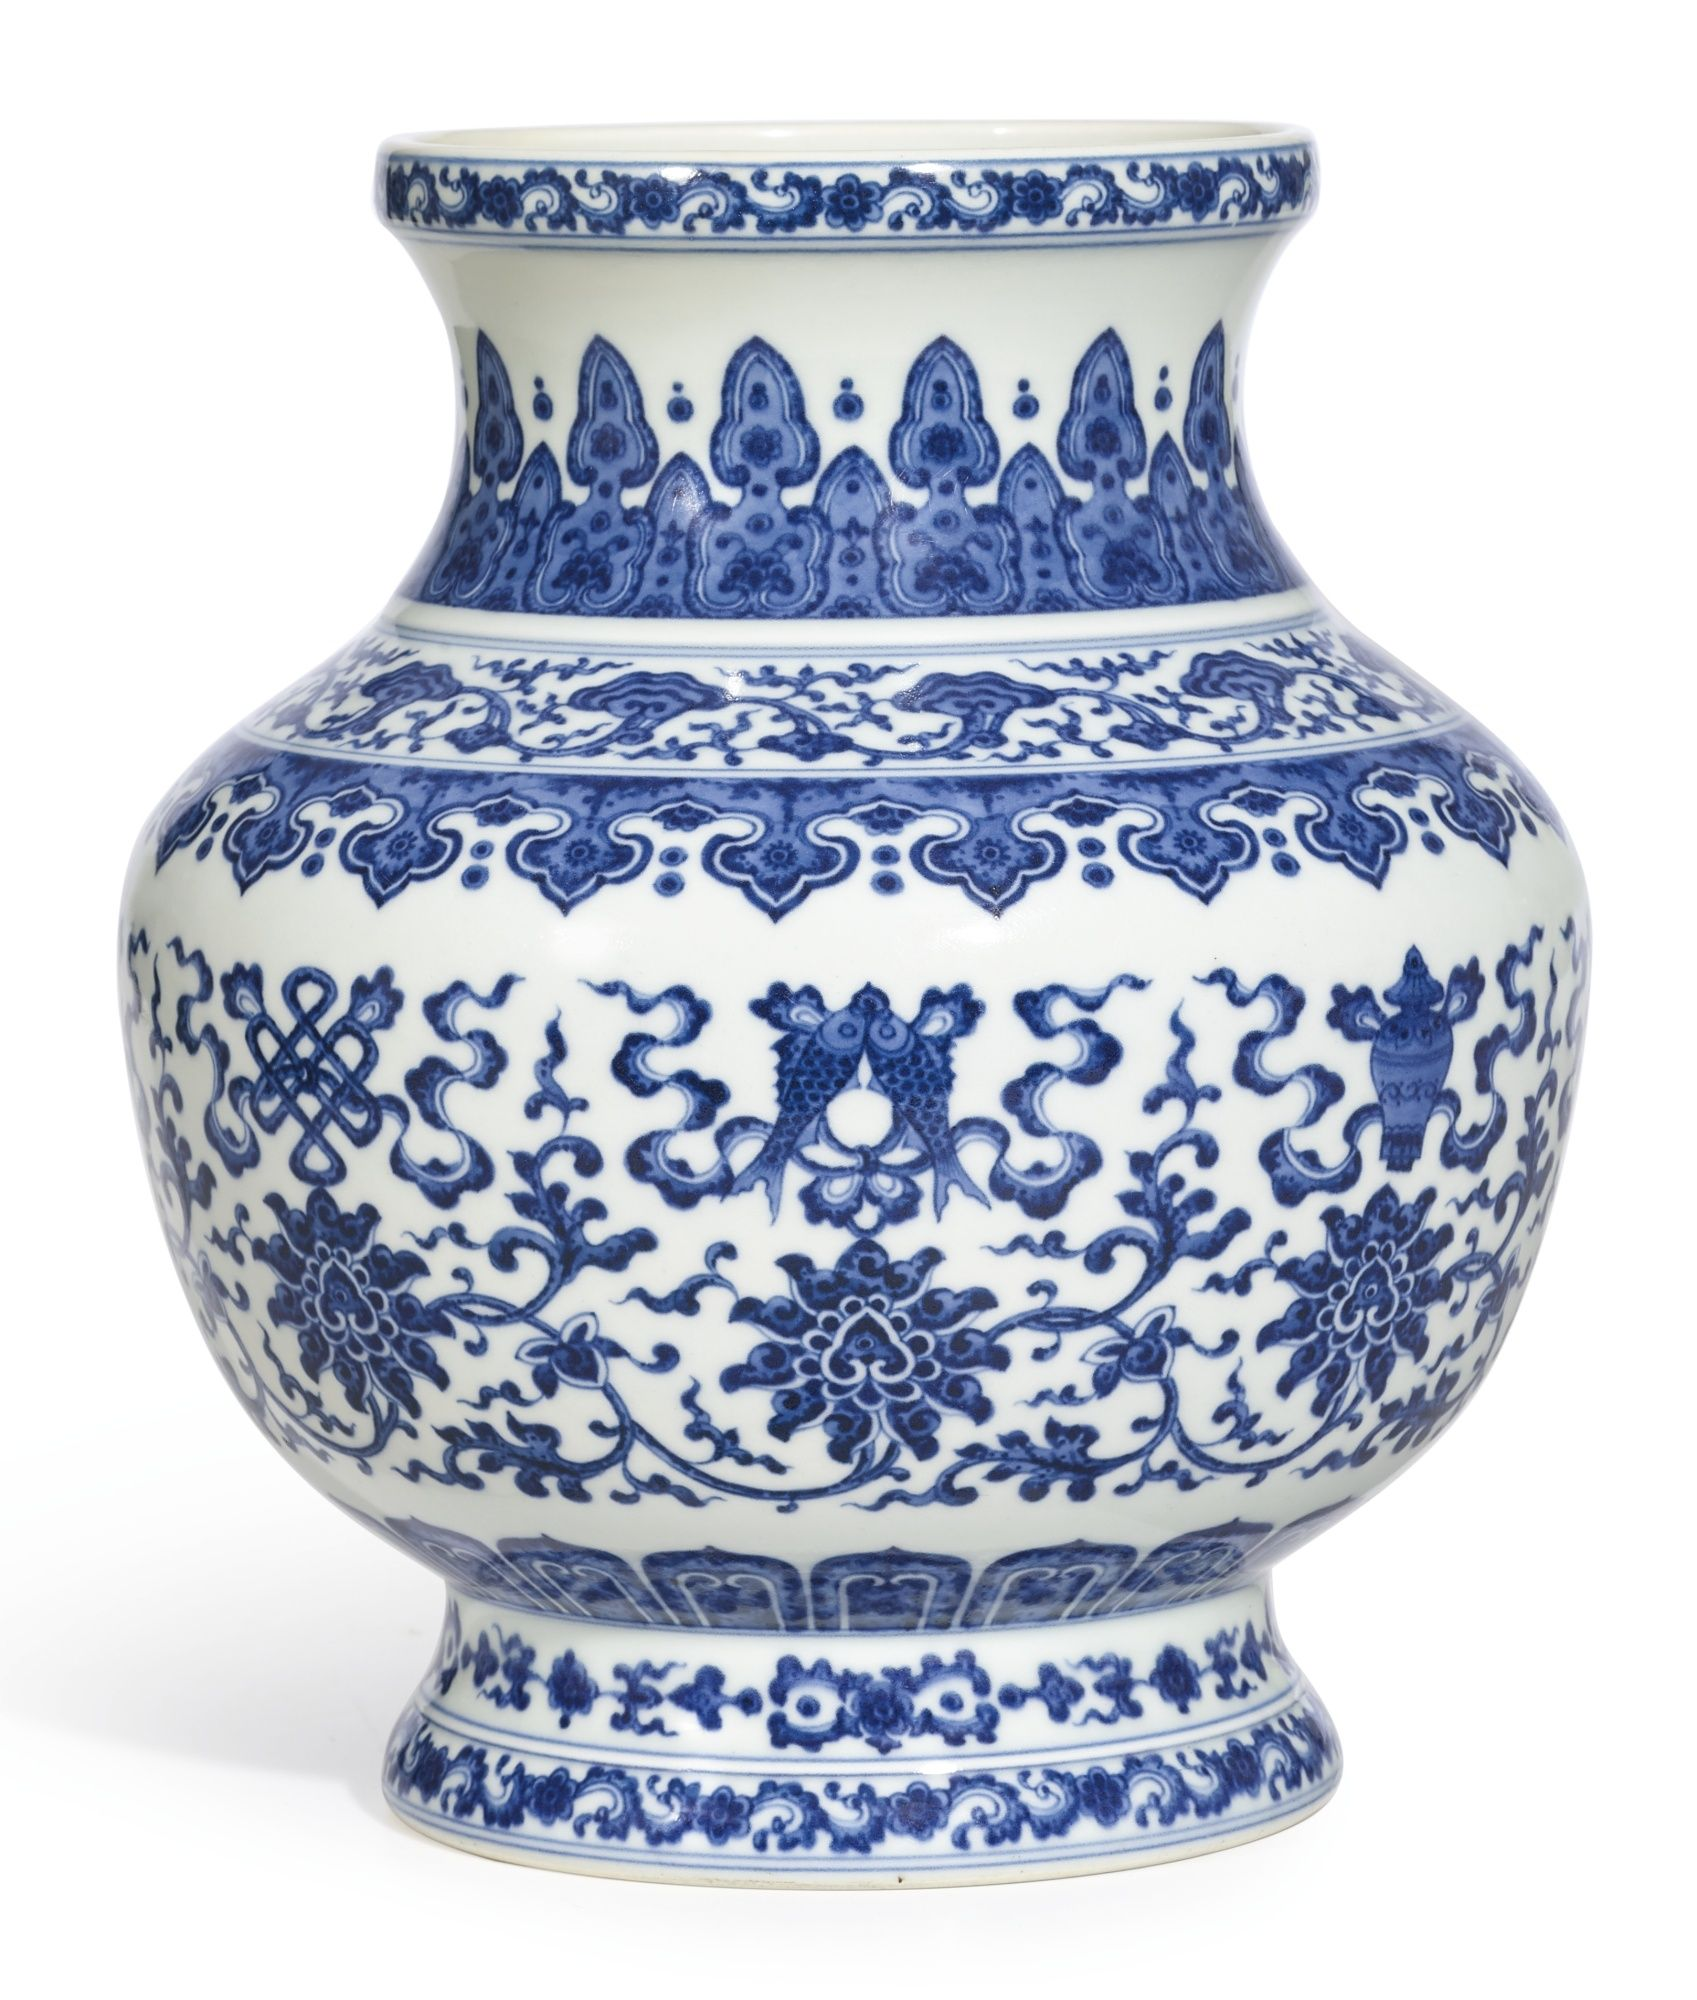 A blue and white bajixiang vase zunbrseal mark and period of a blue and white bajixiang vase zun seal mark and period of qianlong alain reviewsmspy